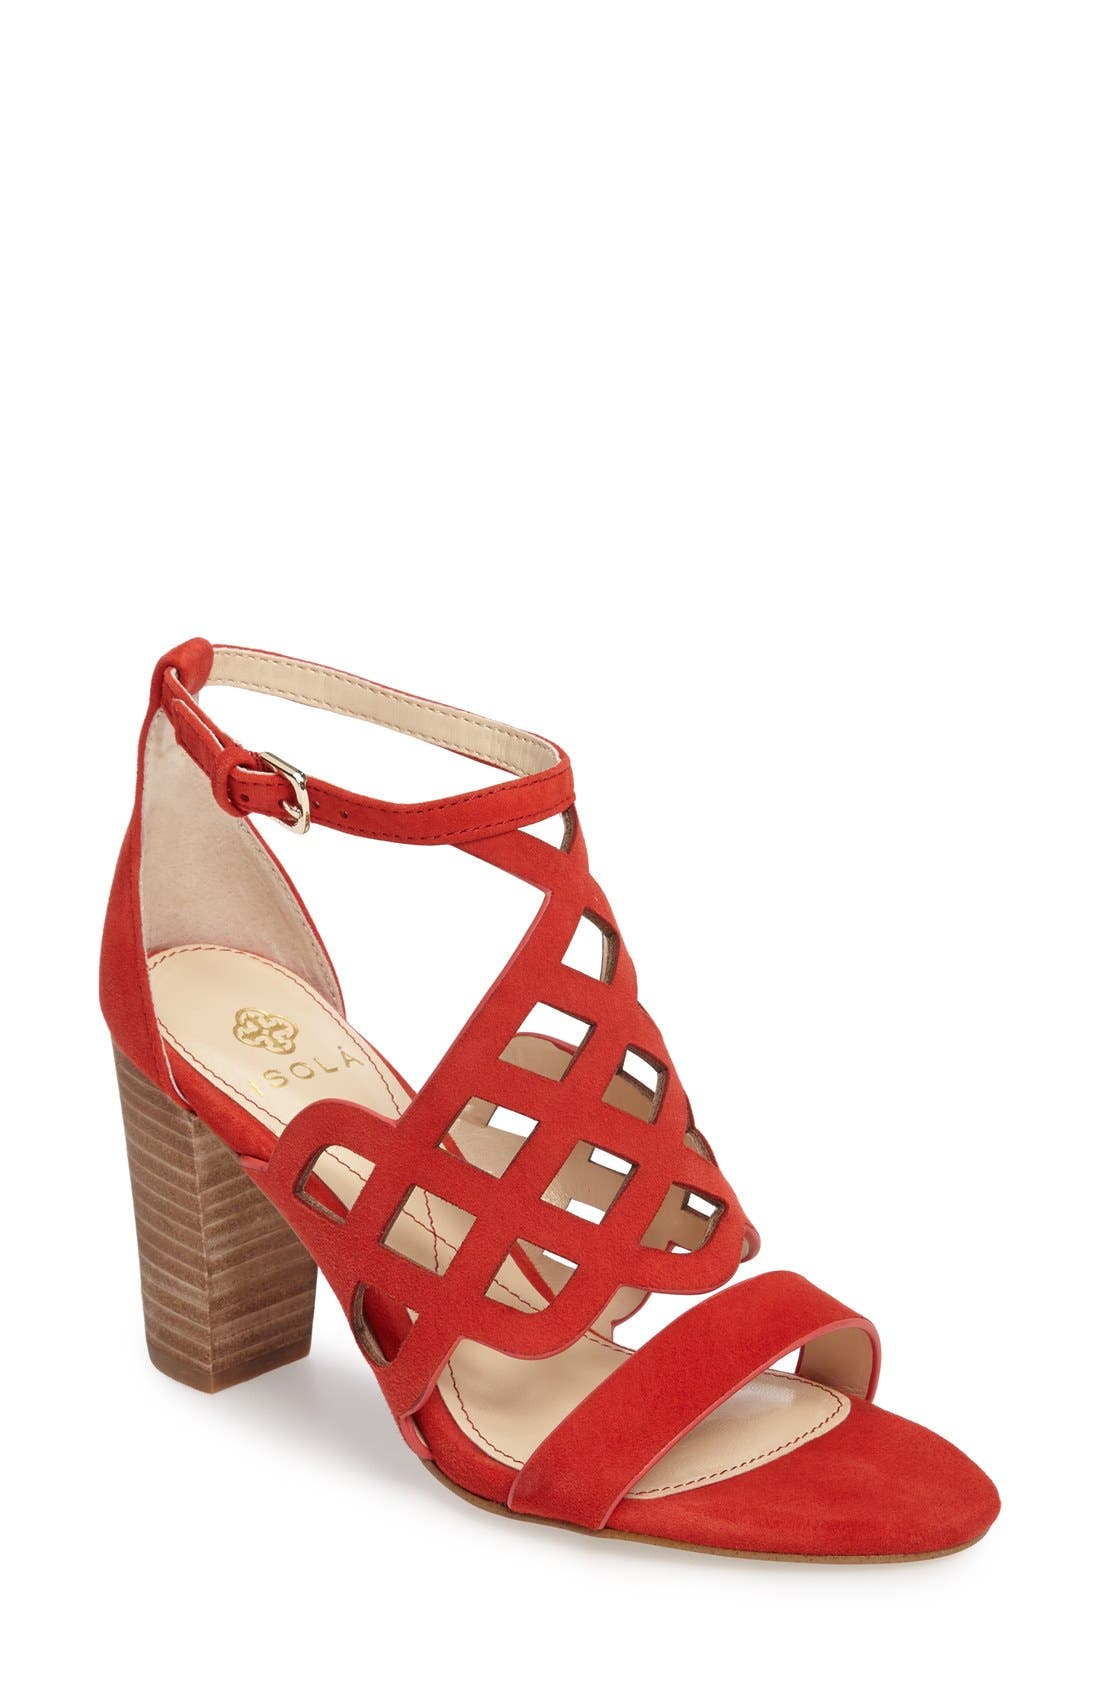 Despina Cutout Ankle Strap Sandal,                         Main,                         color, LIPSTICK RED SUEDE